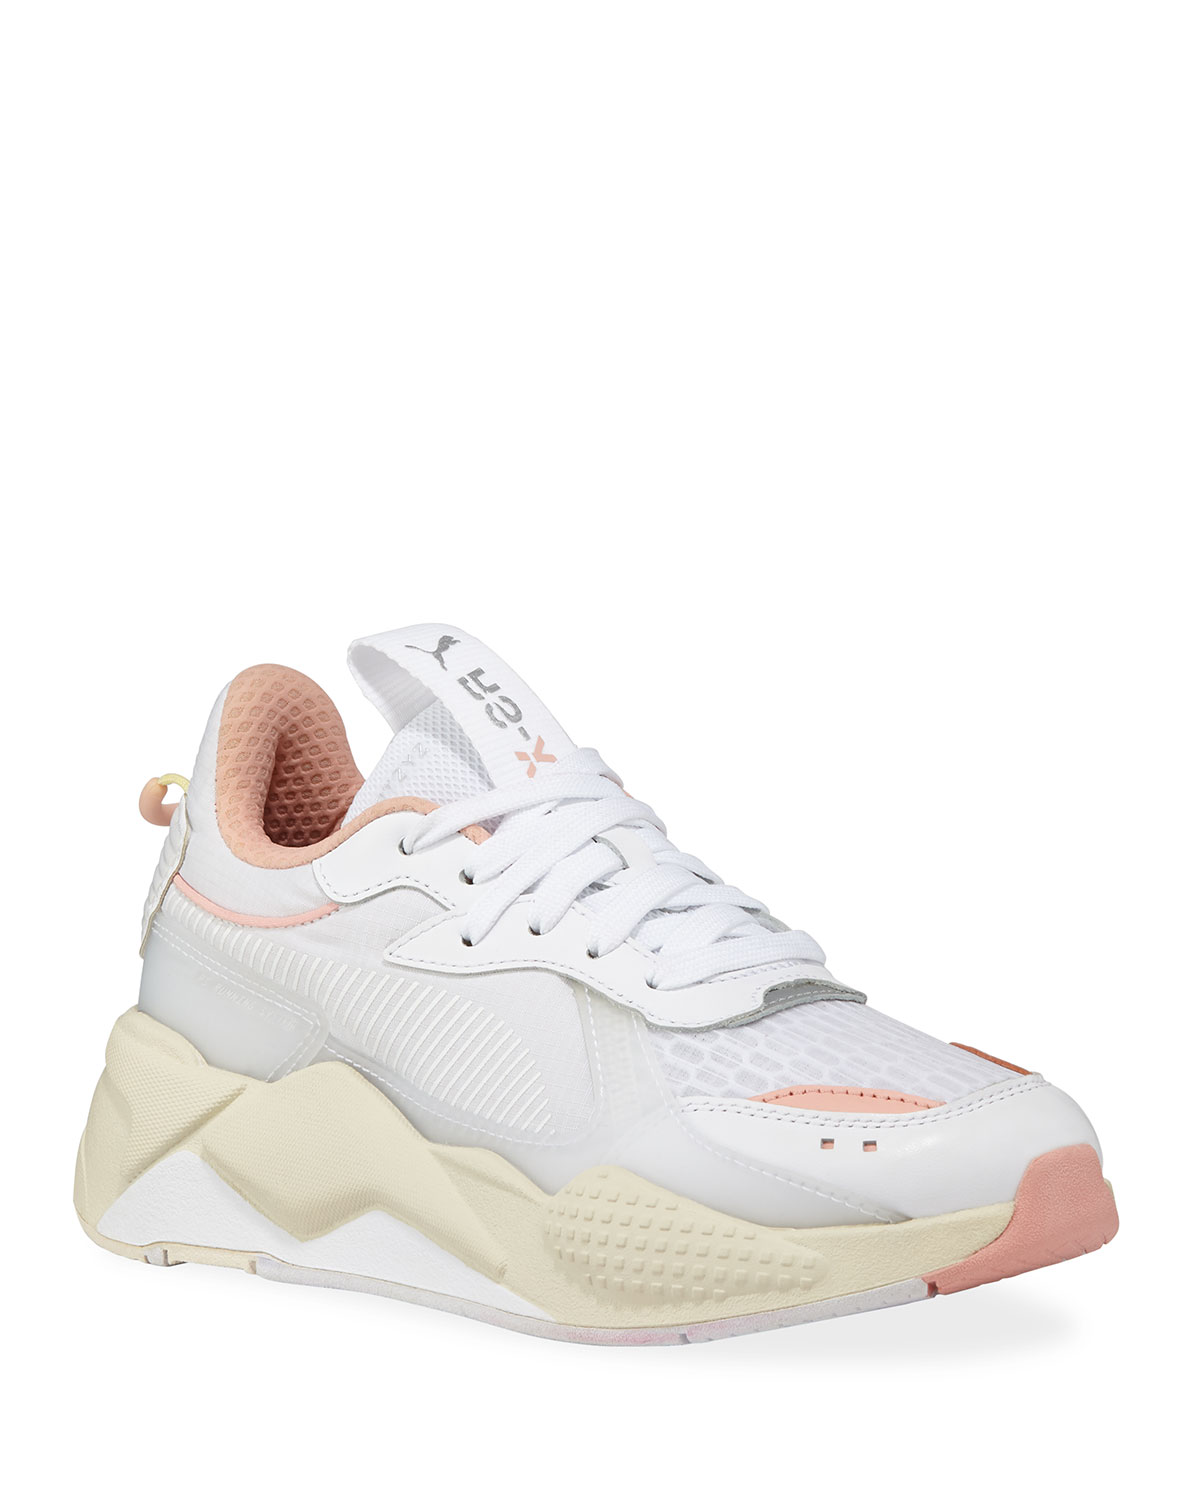 e3fc1ba2c94aac Puma Rs-X Tech Lace-Up Nylon Trainer Sneakers In White/ Peach Bud ...